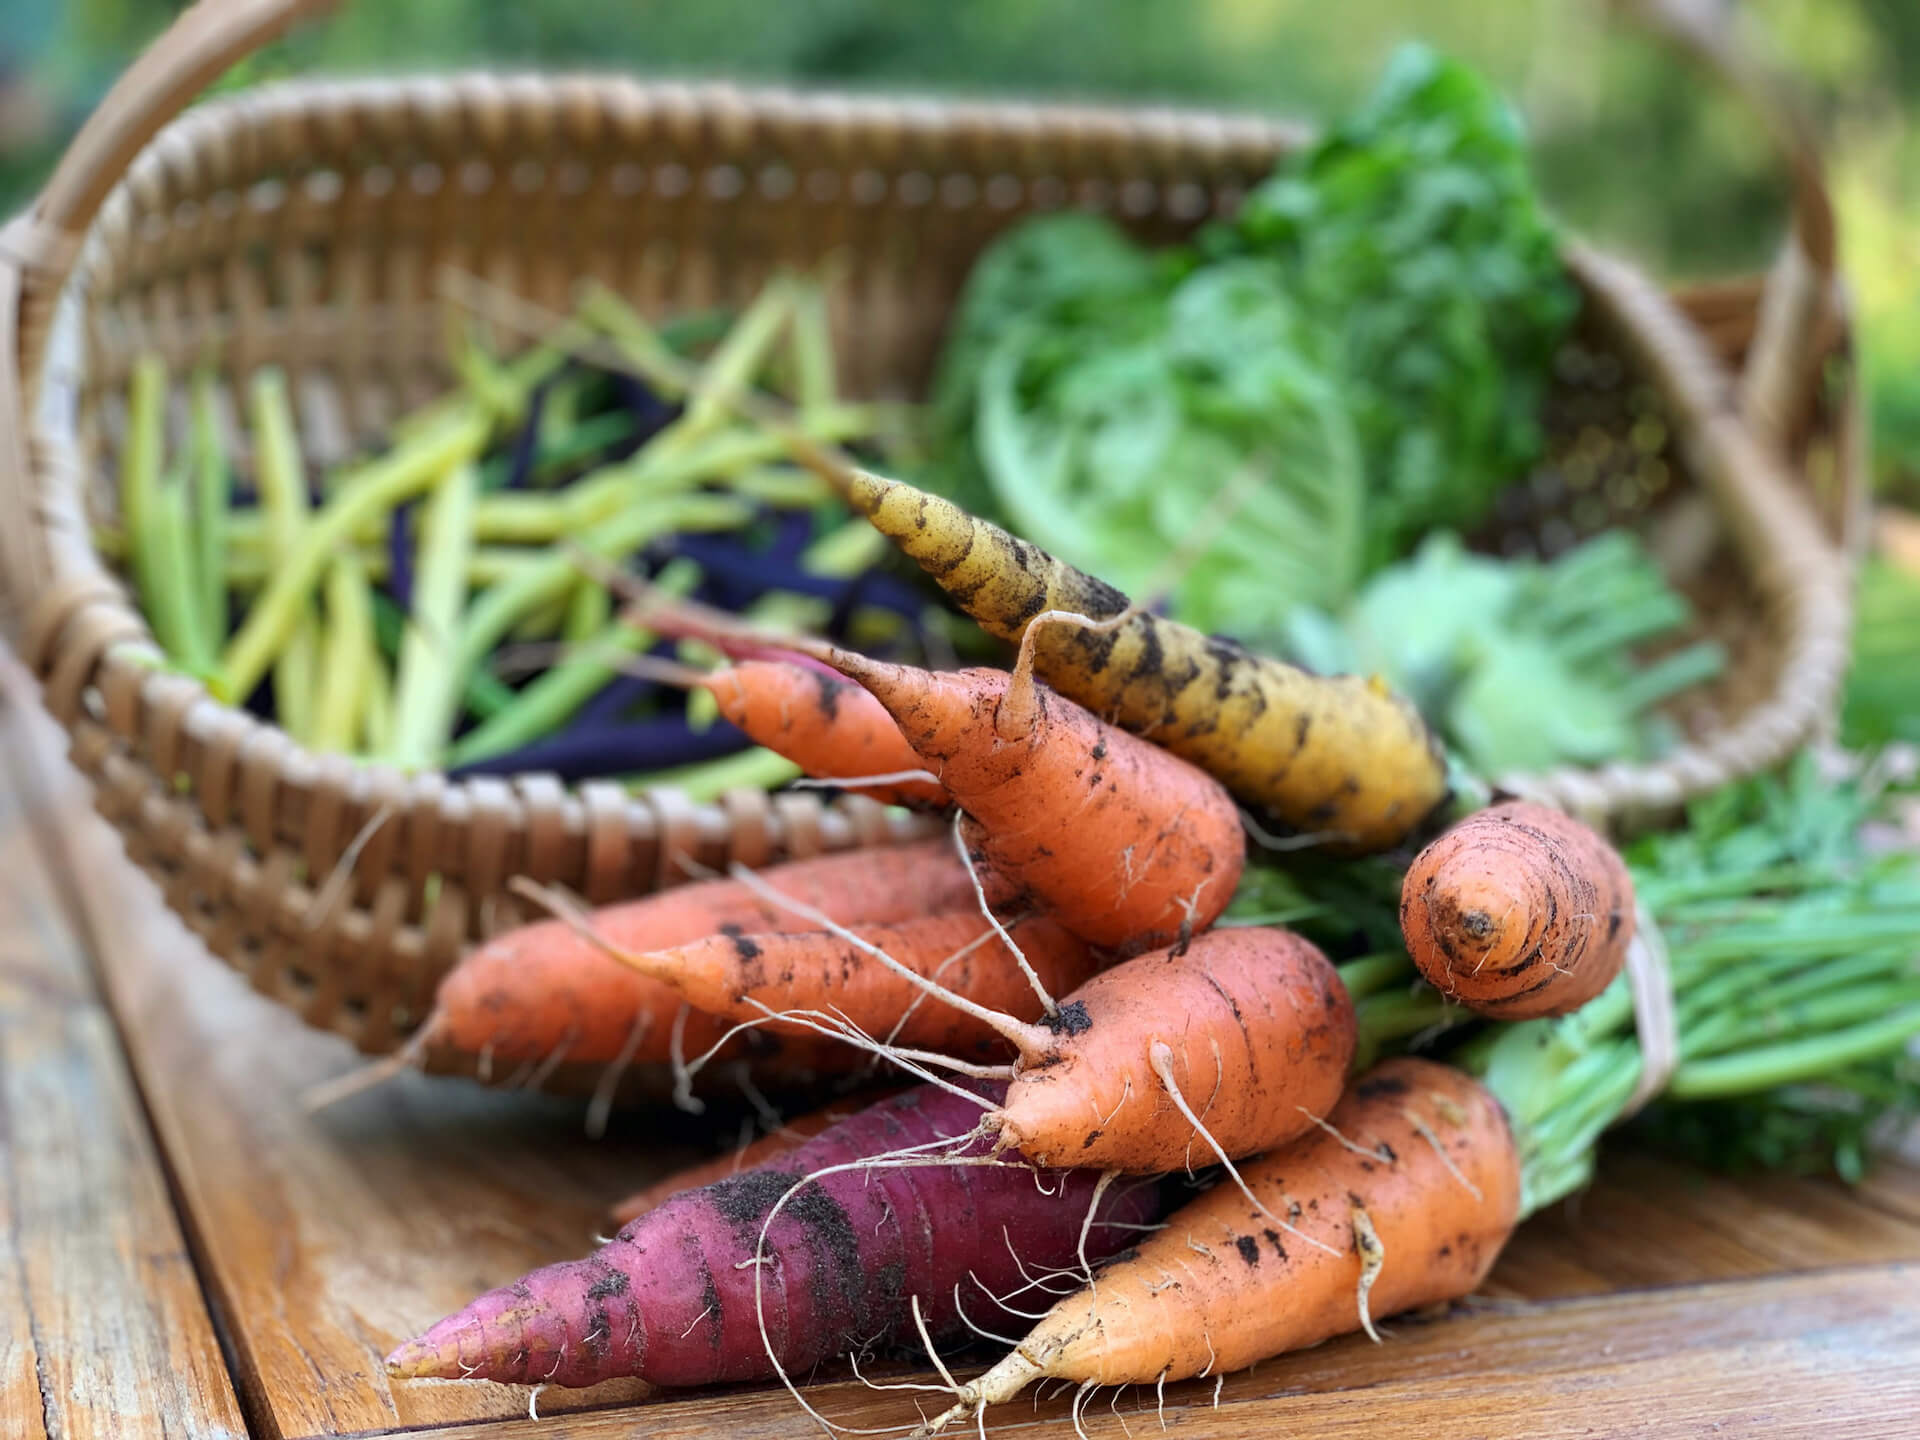 Basket of homegrown carrots picked fresh from organic garden.